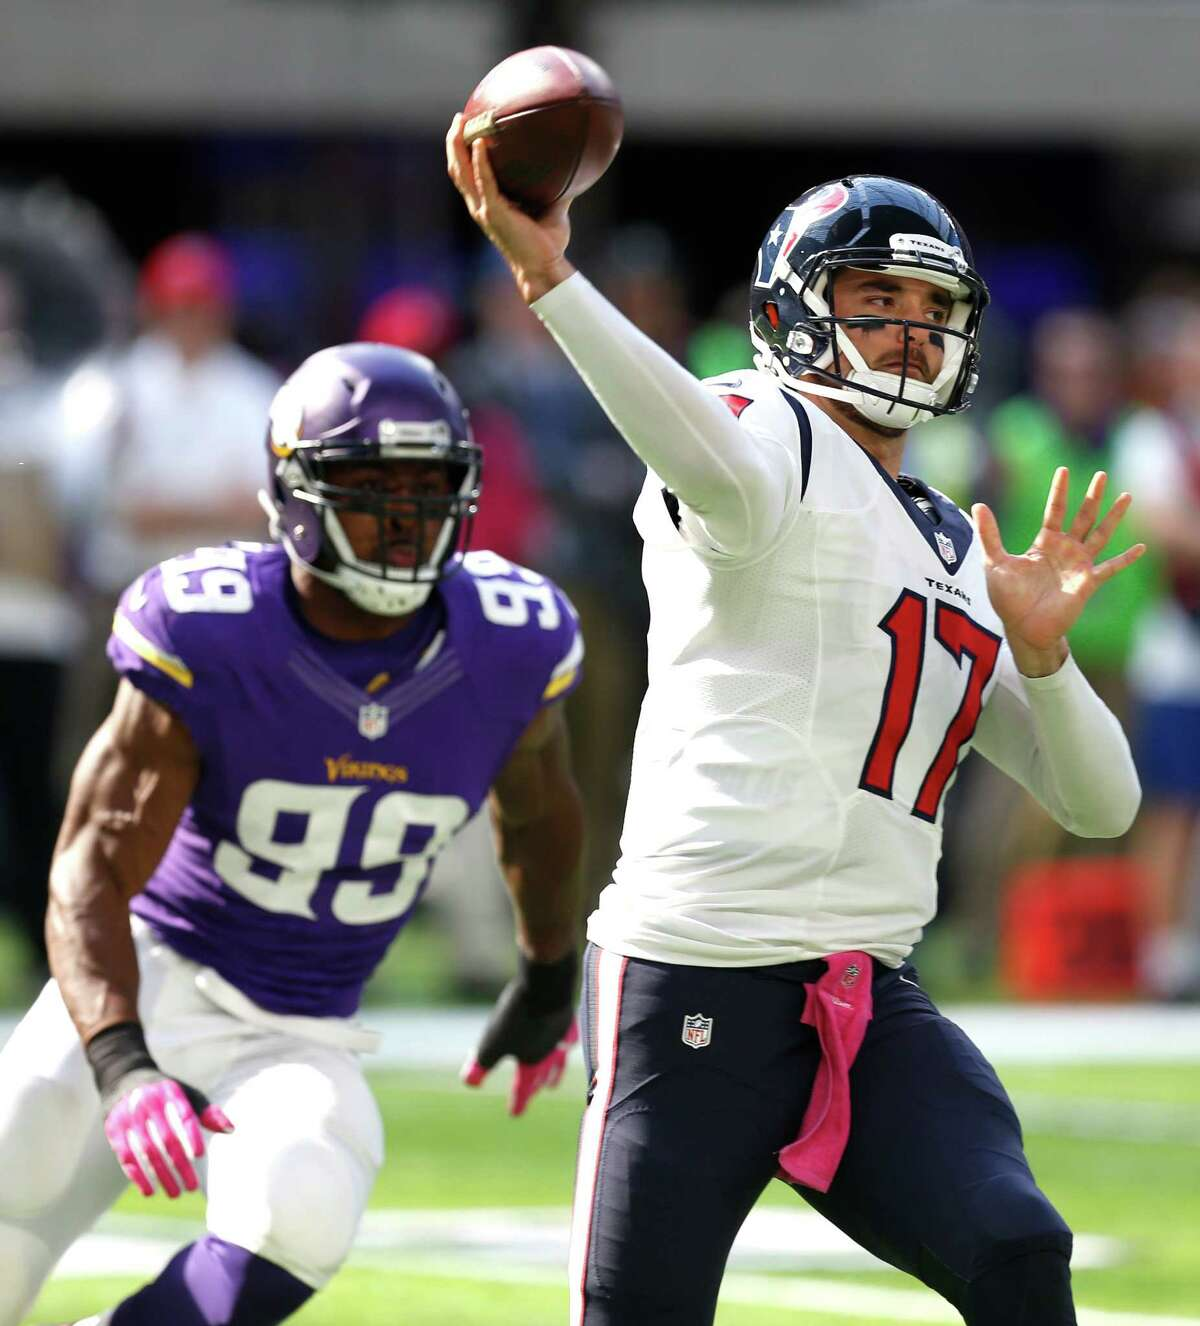 Quarterback Brock Osweiler's 56.1 rating said it all. He couldn't get anything going in the first half. The offense was horrendous. They had 67 yards on six series in the first half. He started 6-of-20 for 54 yards. Grade:F-minus